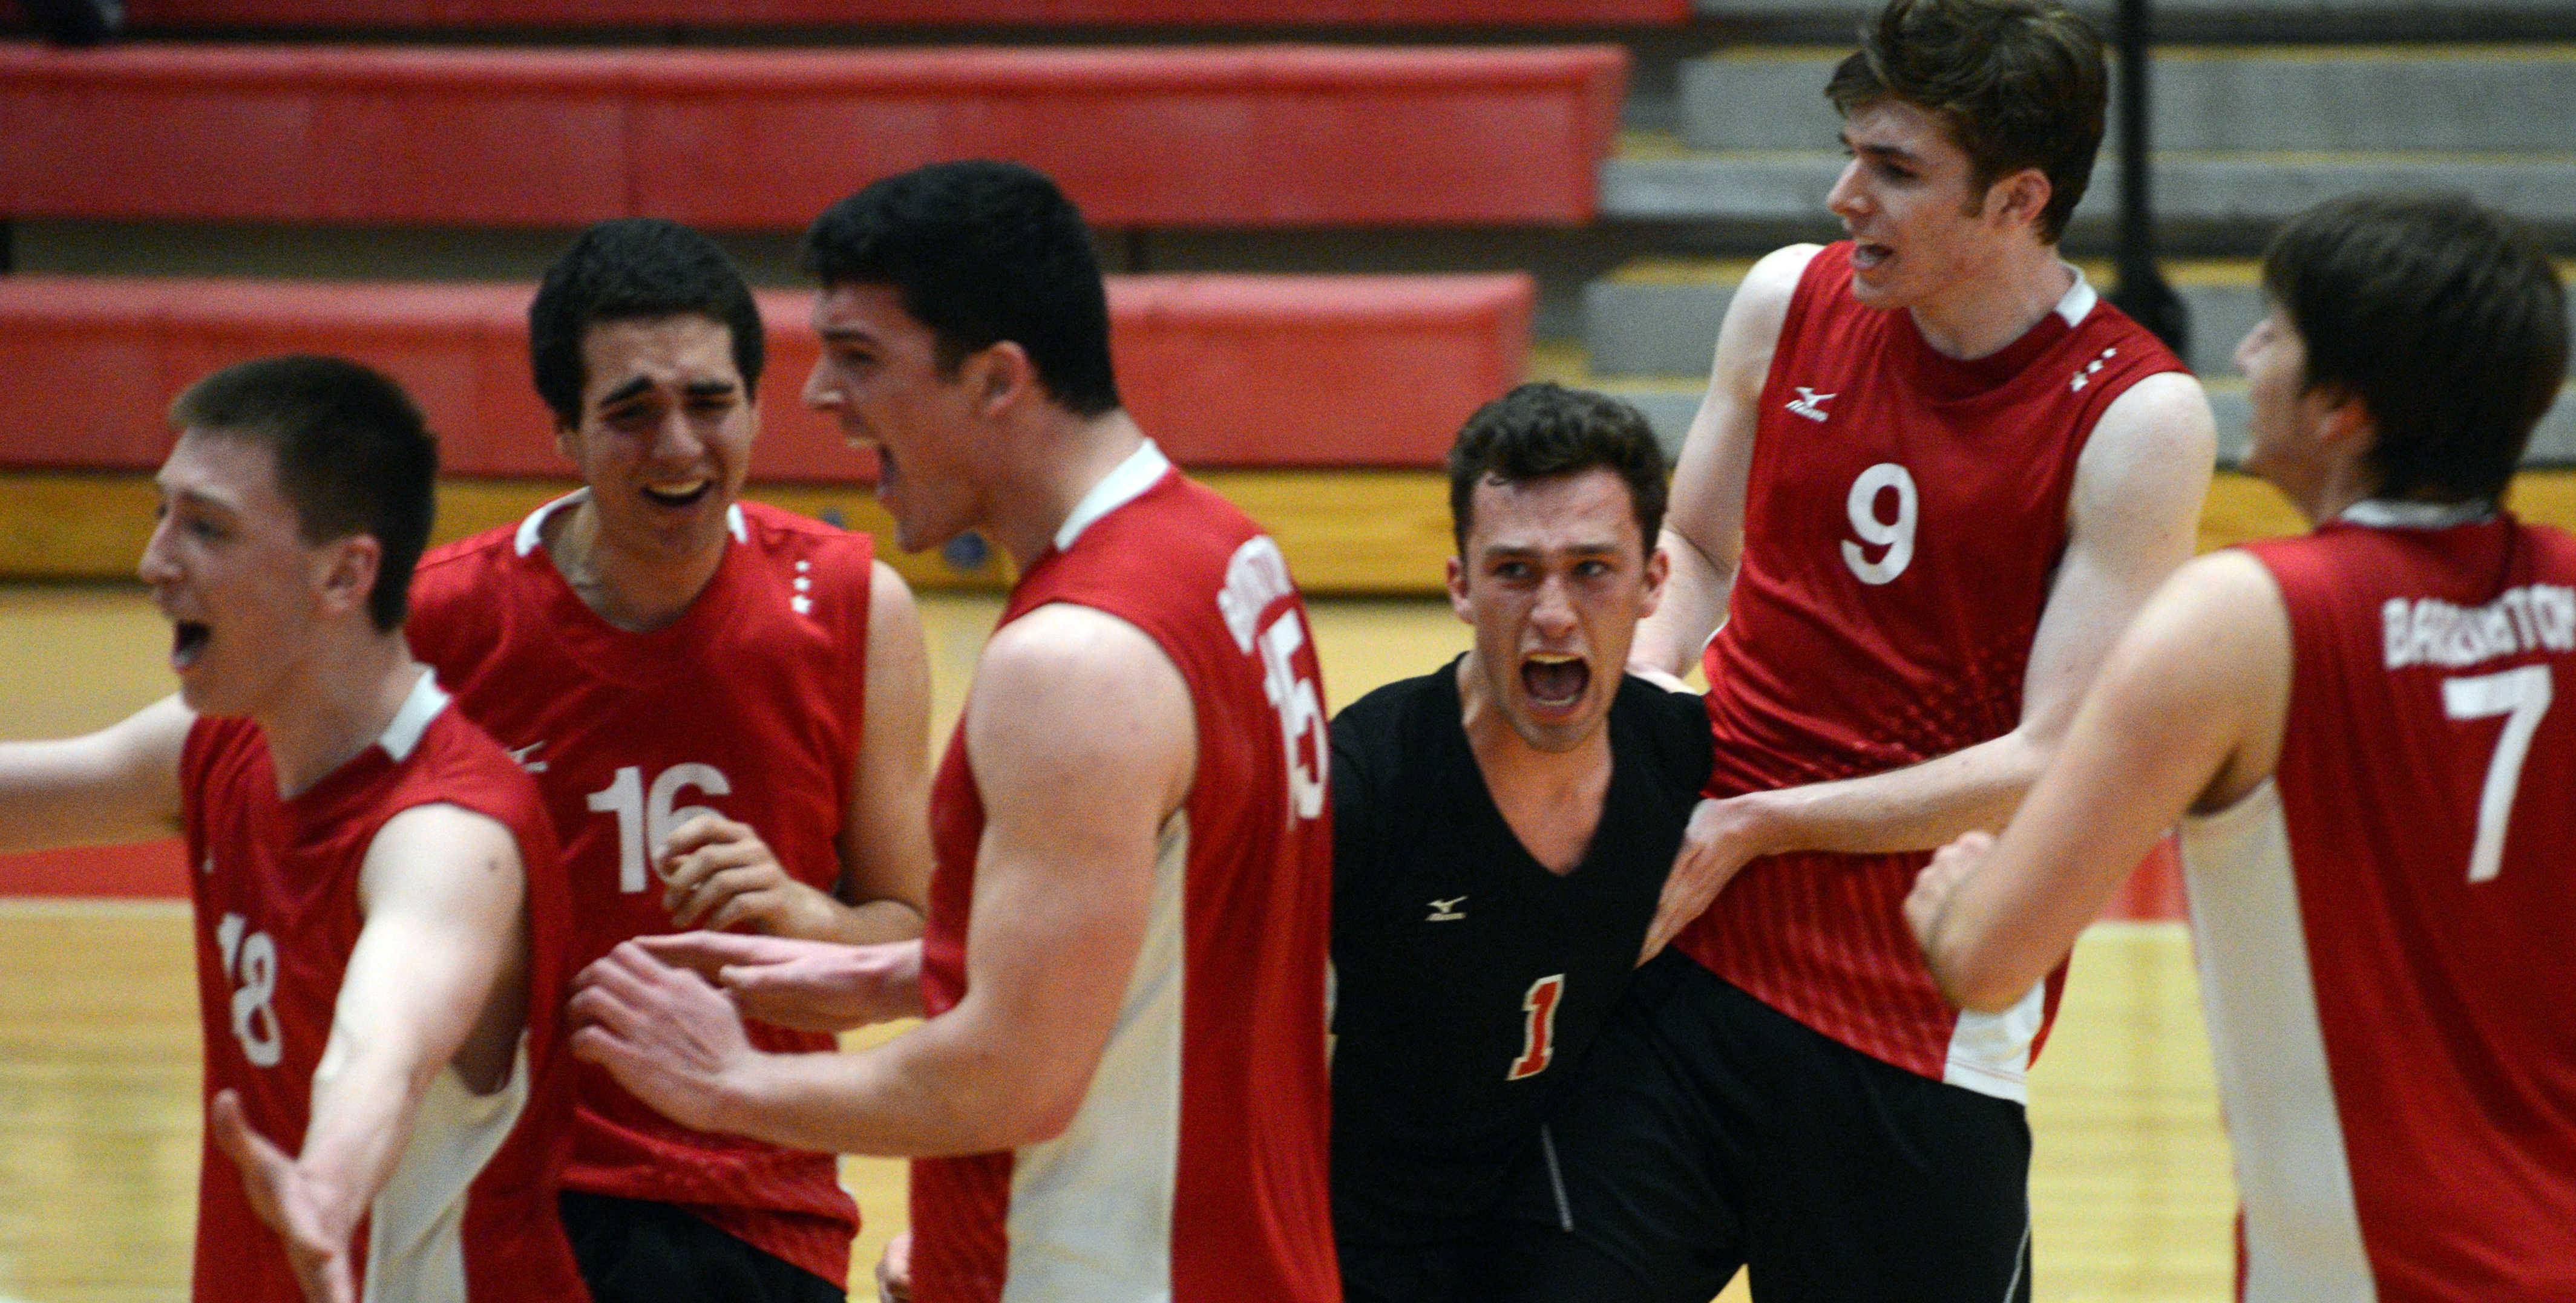 Barrington players celebrate their win over Hersey in the MSL championship match.